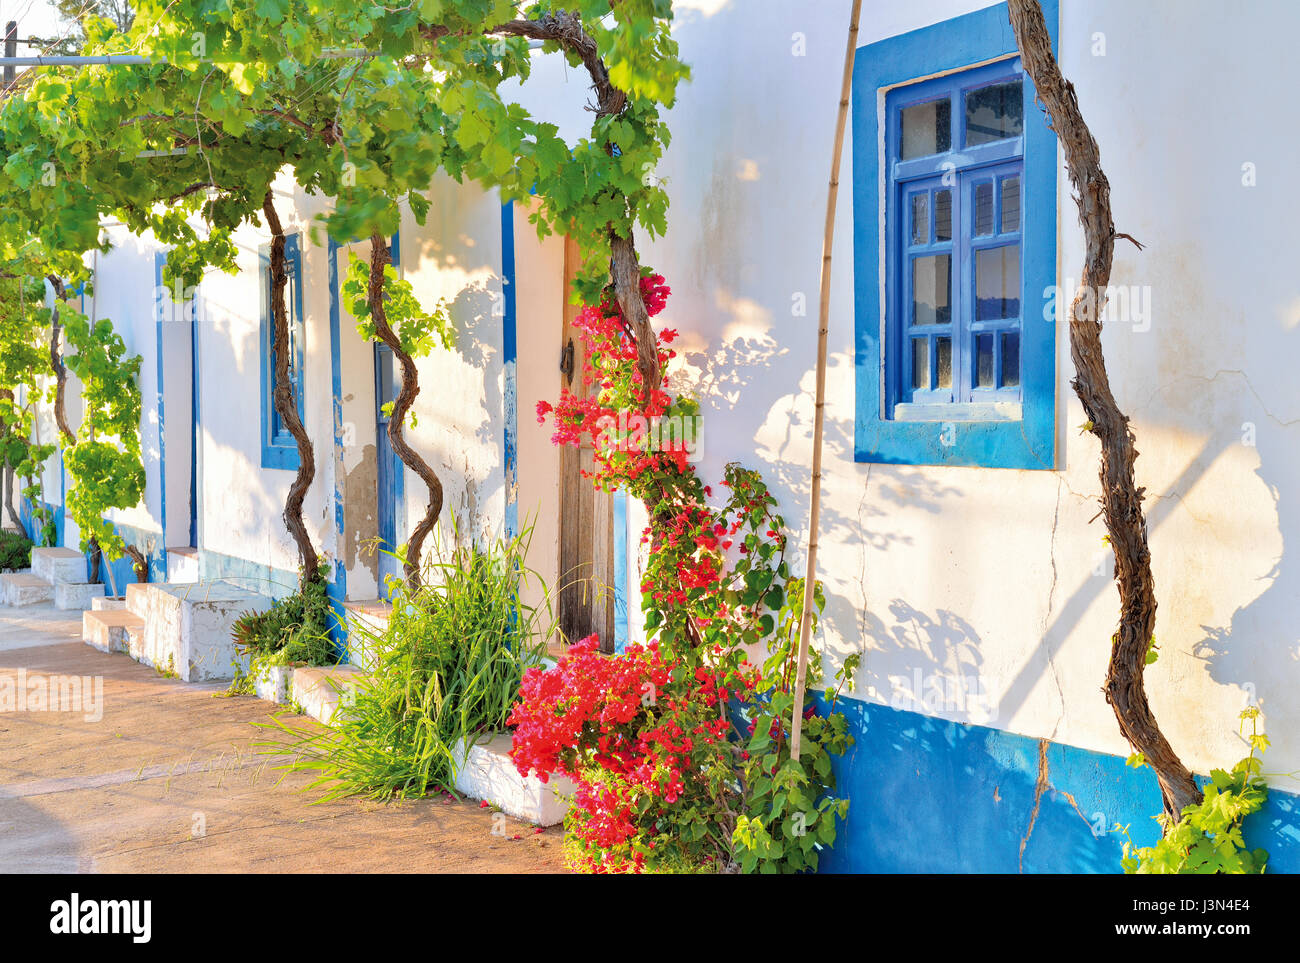 Picturesque rural house with blue window frames and flowers decorating the doors - Stock Image